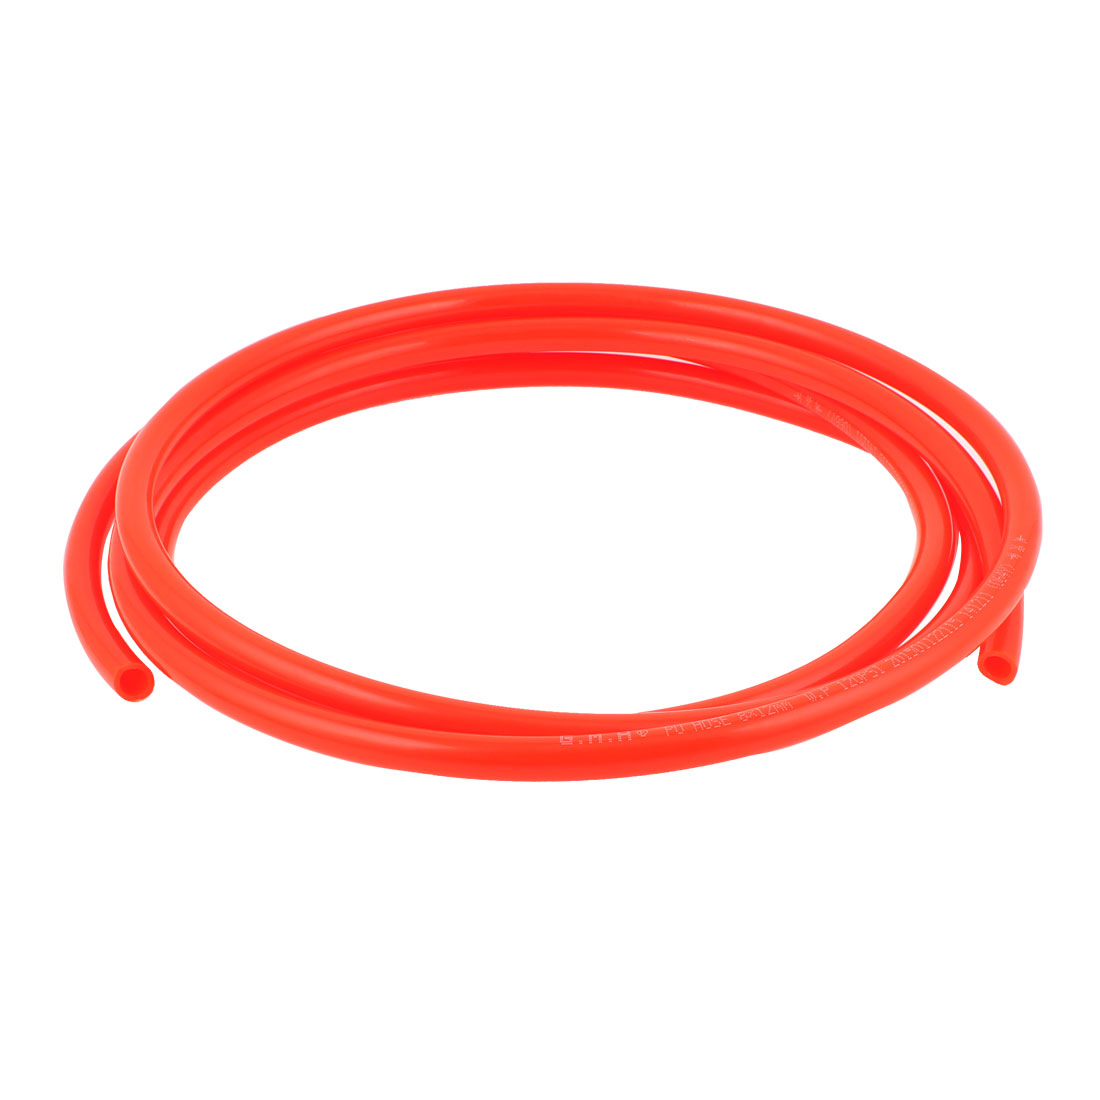 12mm x 8mm Fleaxible PU Tube Pneumatic Polyurethane Hose 3 Meters Long Orange